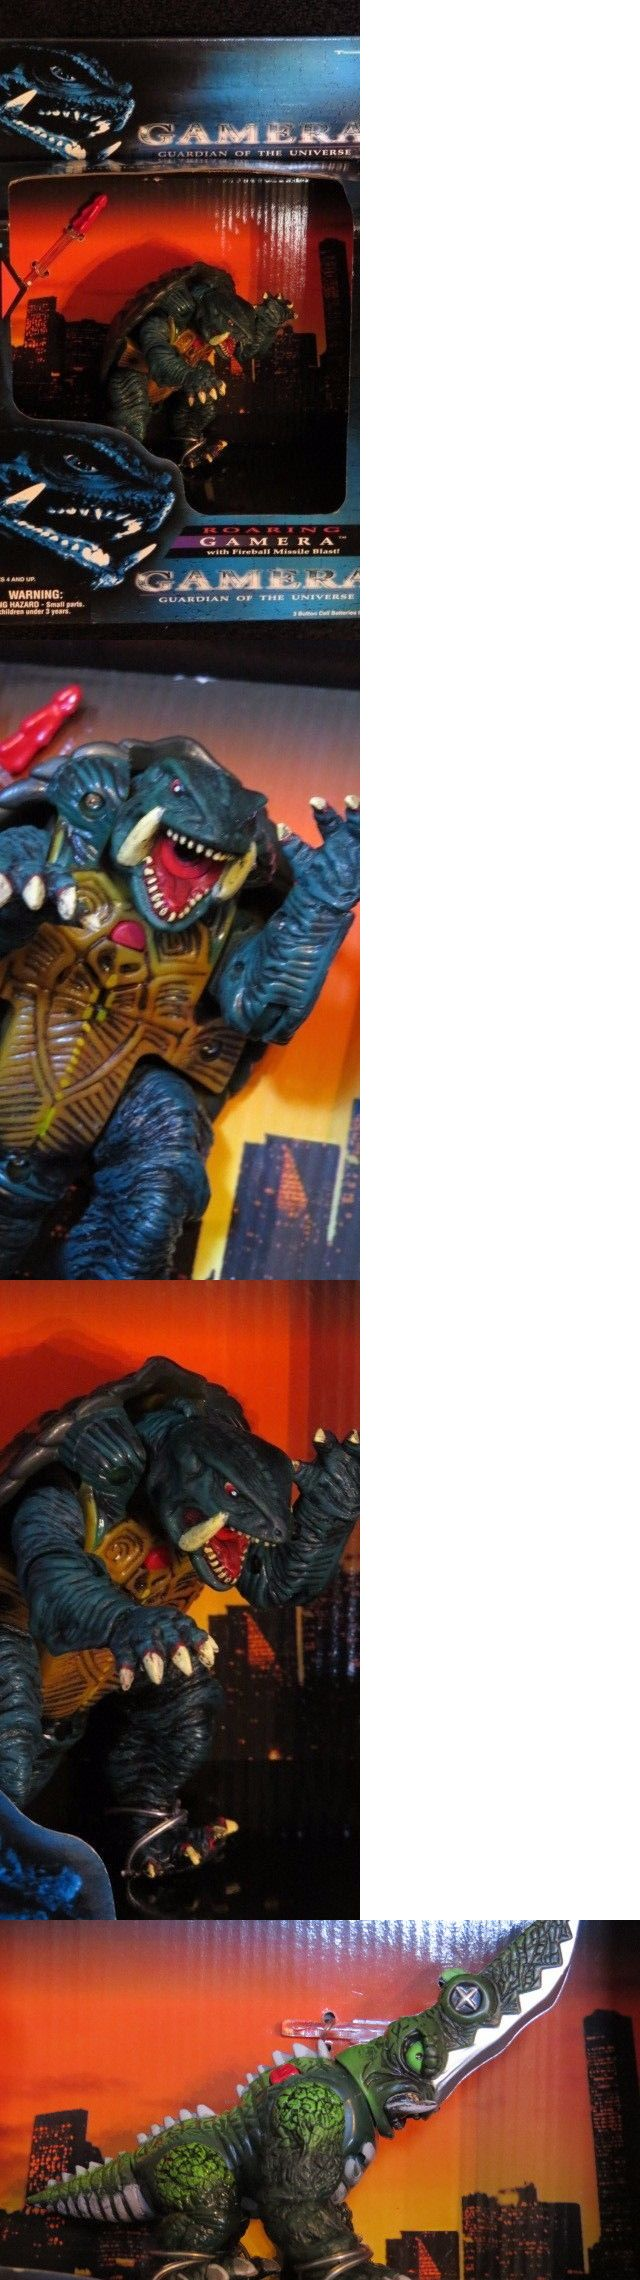 Godzilla 747: Gamera 1995 Monster (Full 6 Set) Guardian Of The Universe New -> BUY IT NOW ONLY: $150 on eBay!